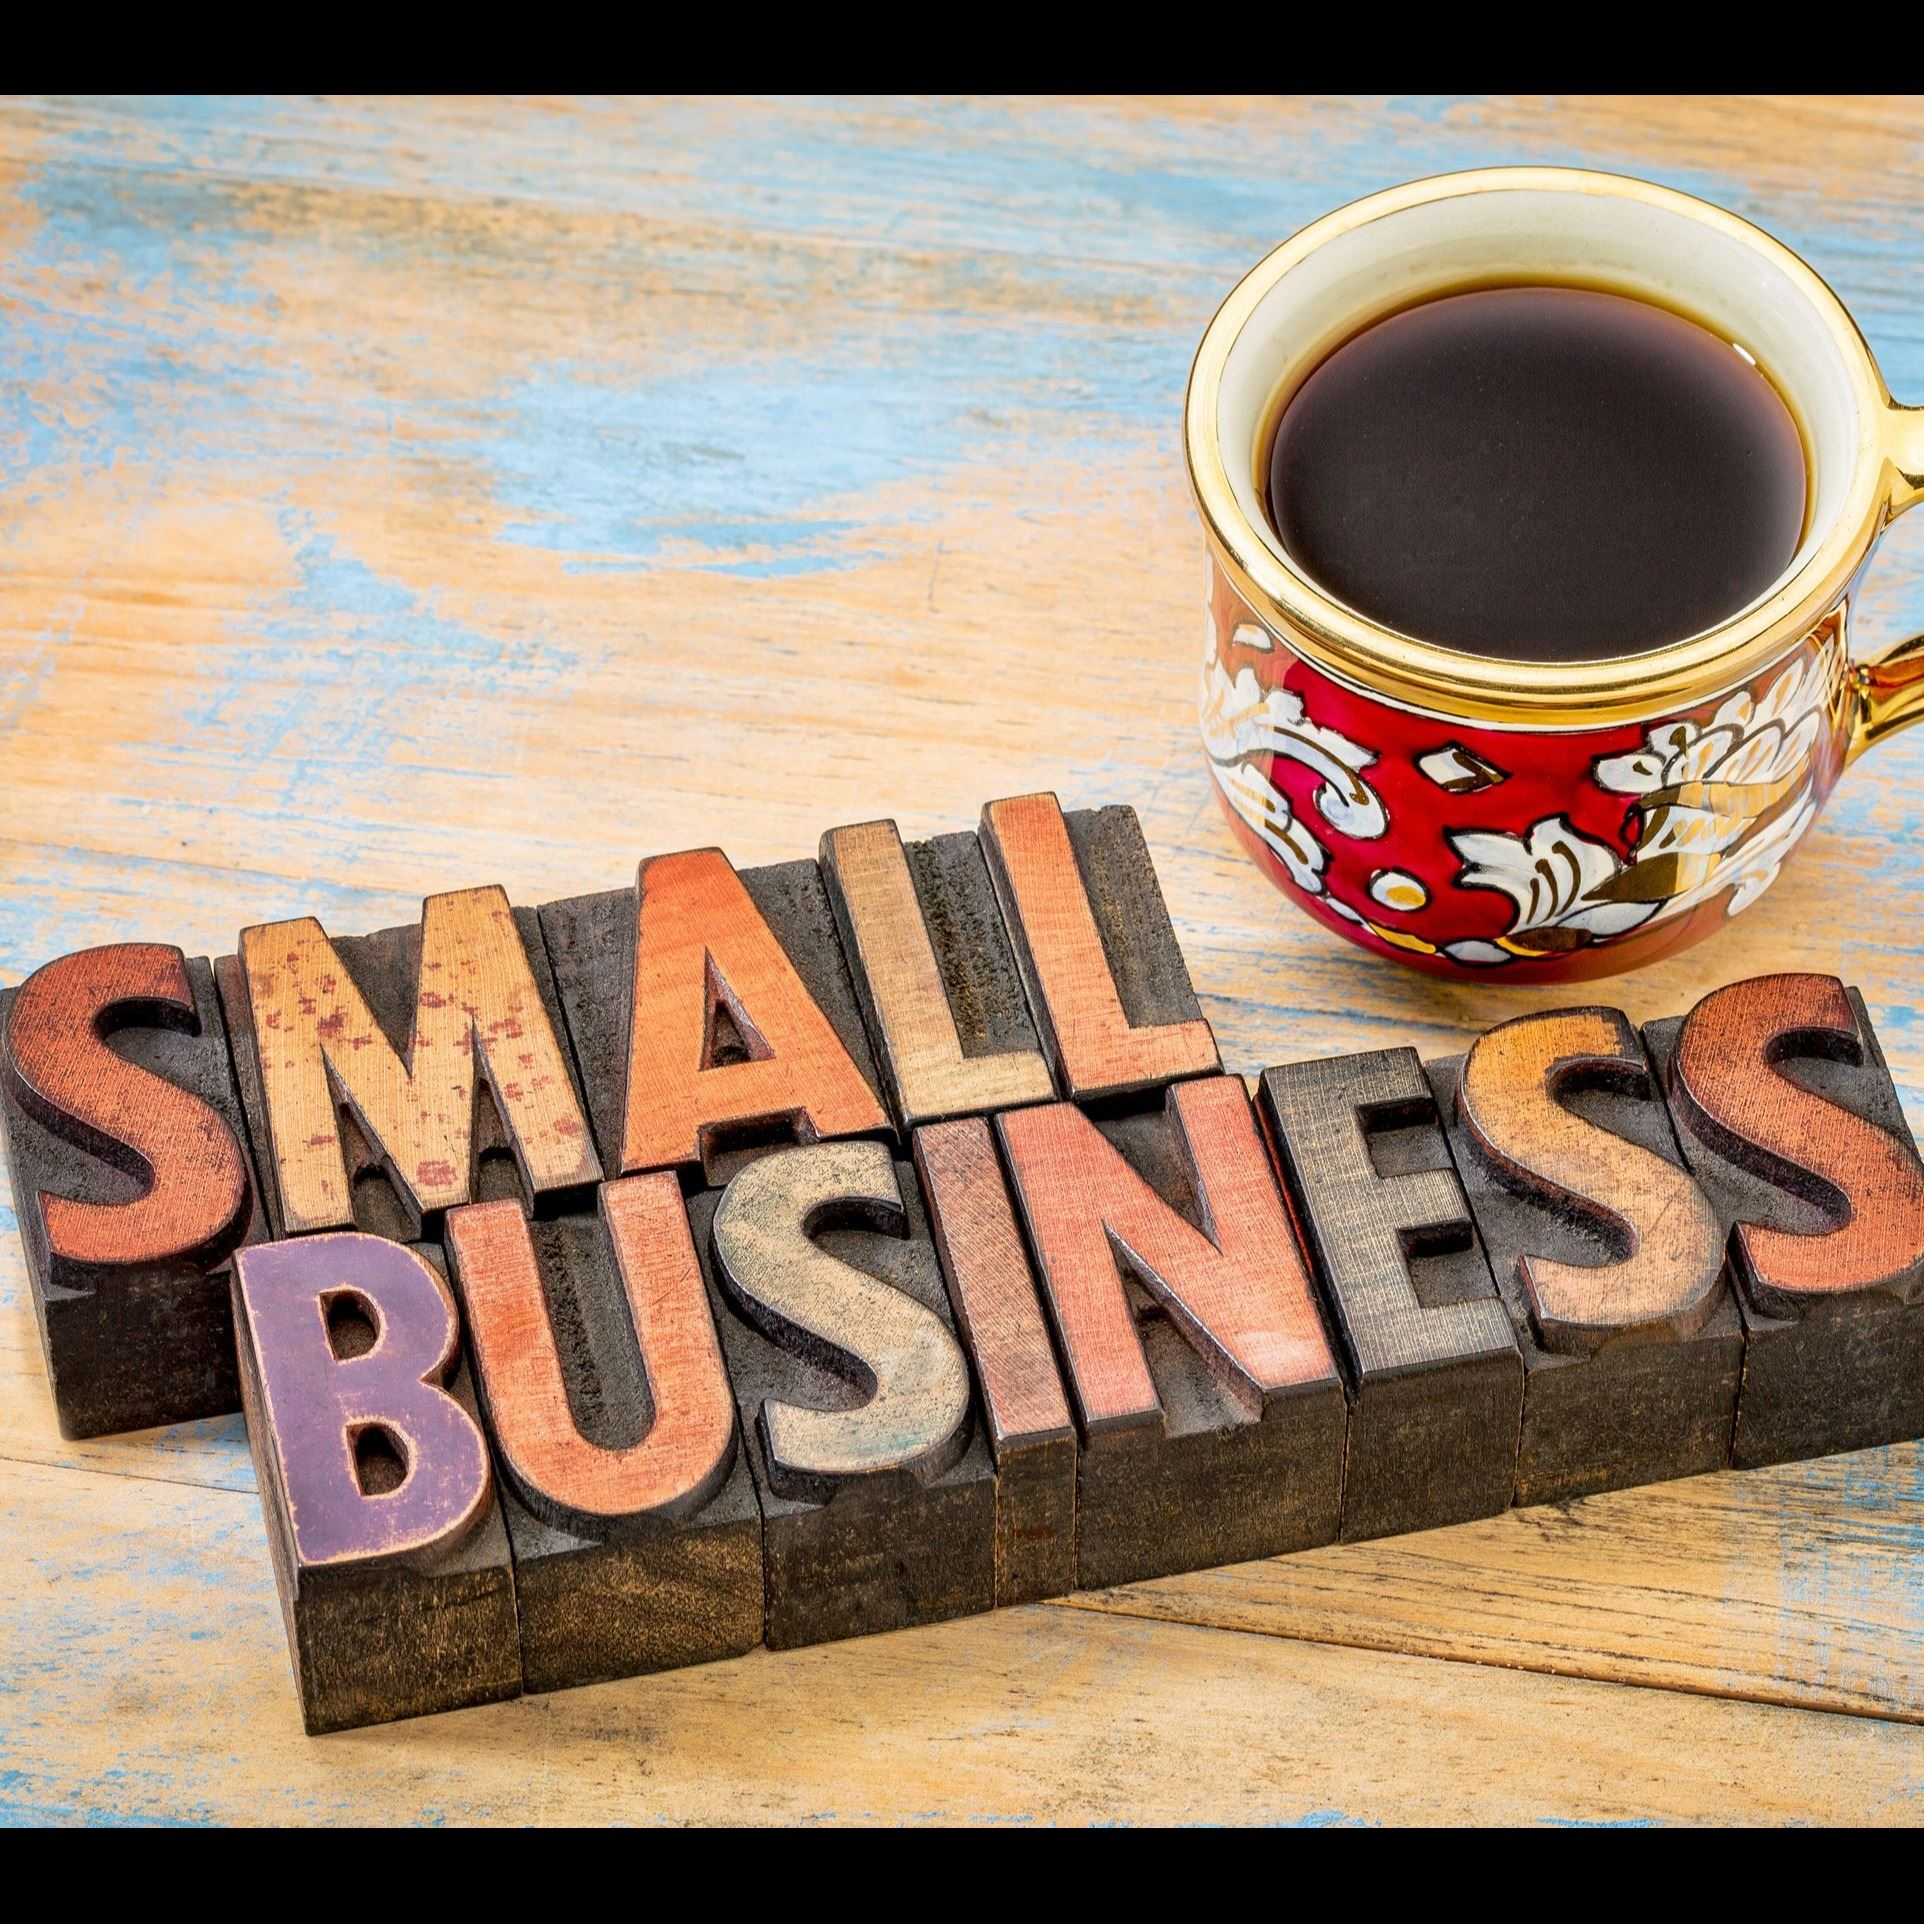 """Small Business"" written in block letters next to a coffee cup."